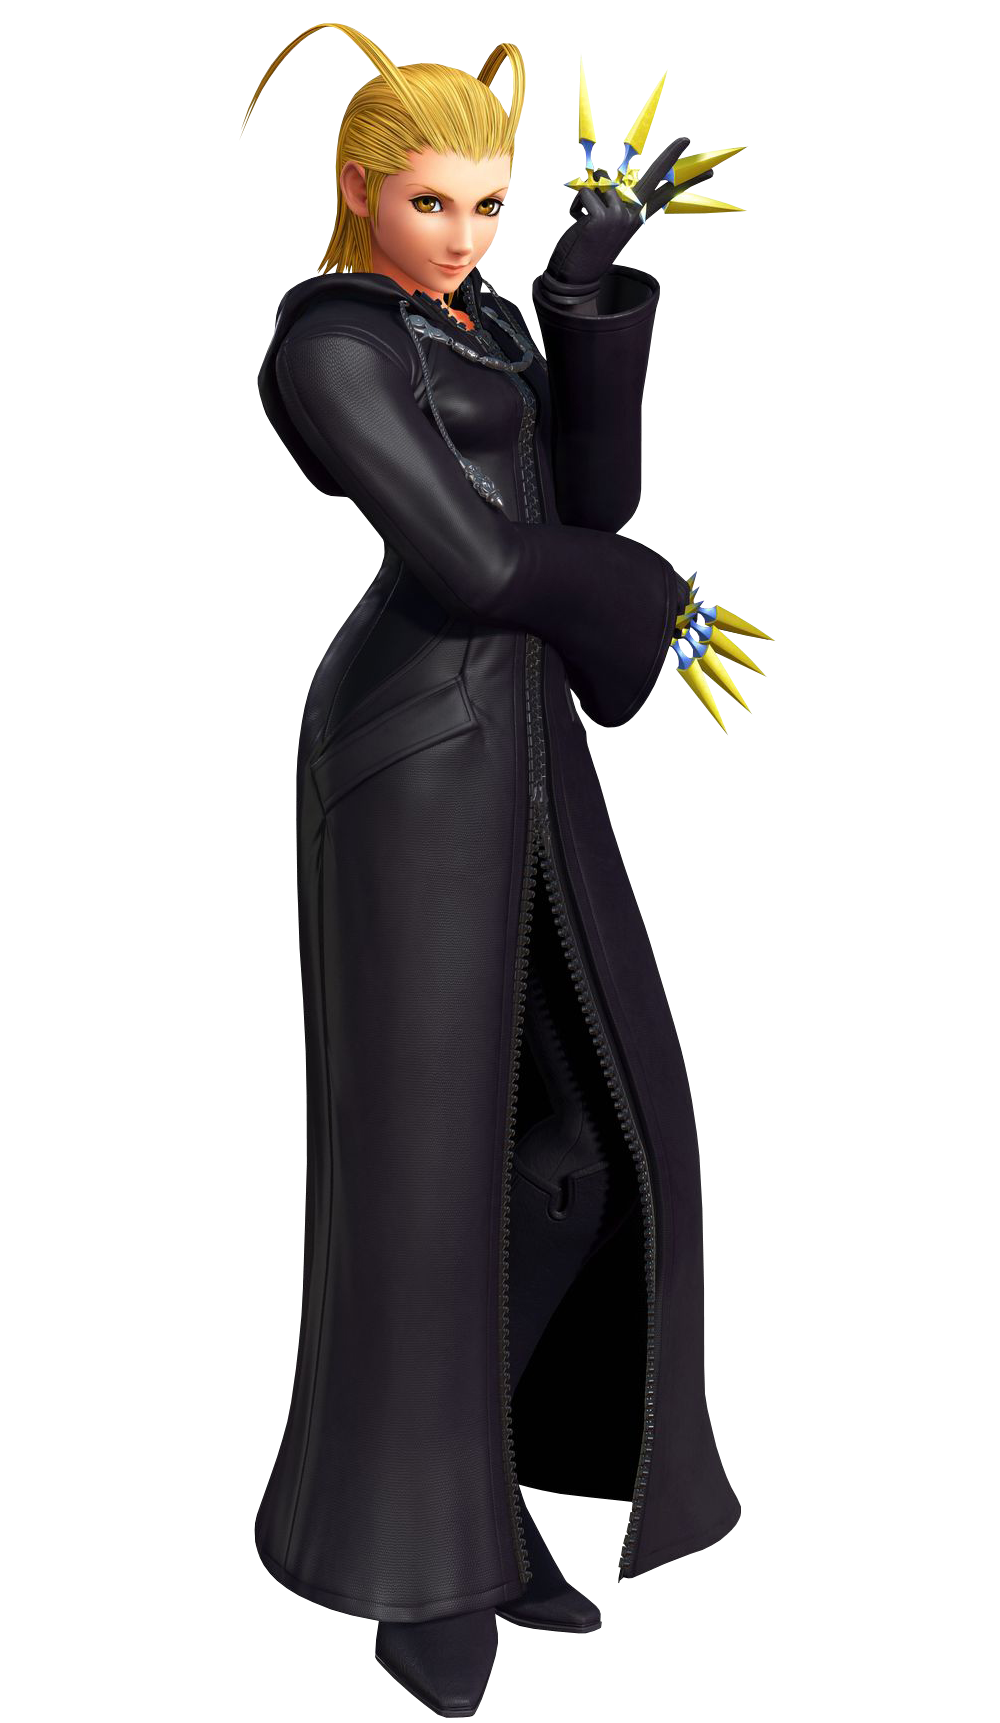 Larxene Kingdom Hearts Wiki Fandom Powered By Wikia